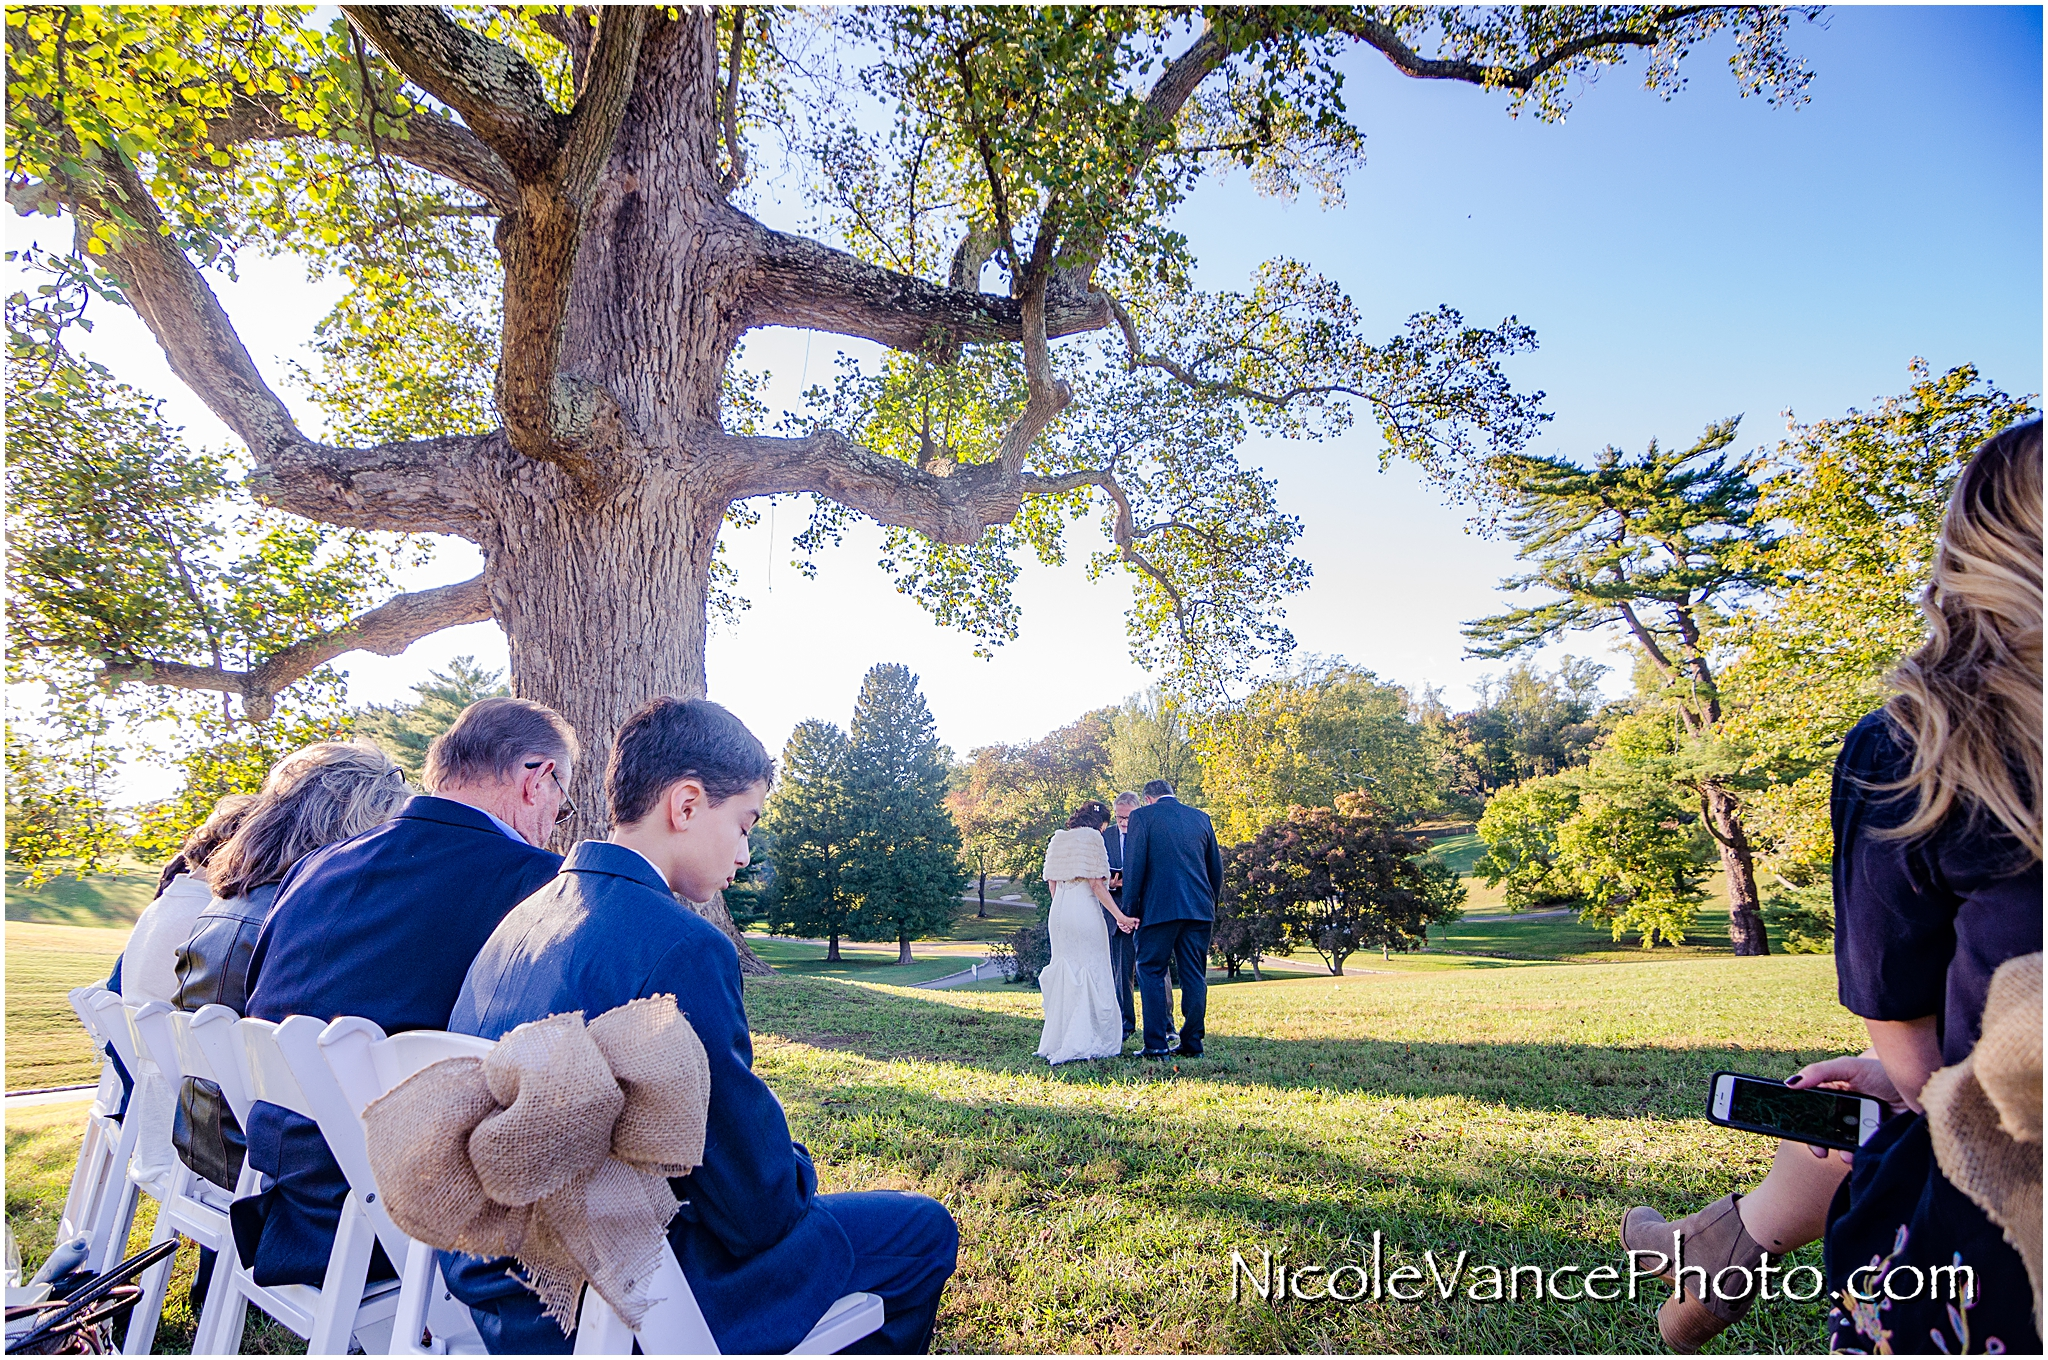 The wedding ceremony takes place under the large Tulip Poplar Tree at Maymont Park in Richmond, VA.